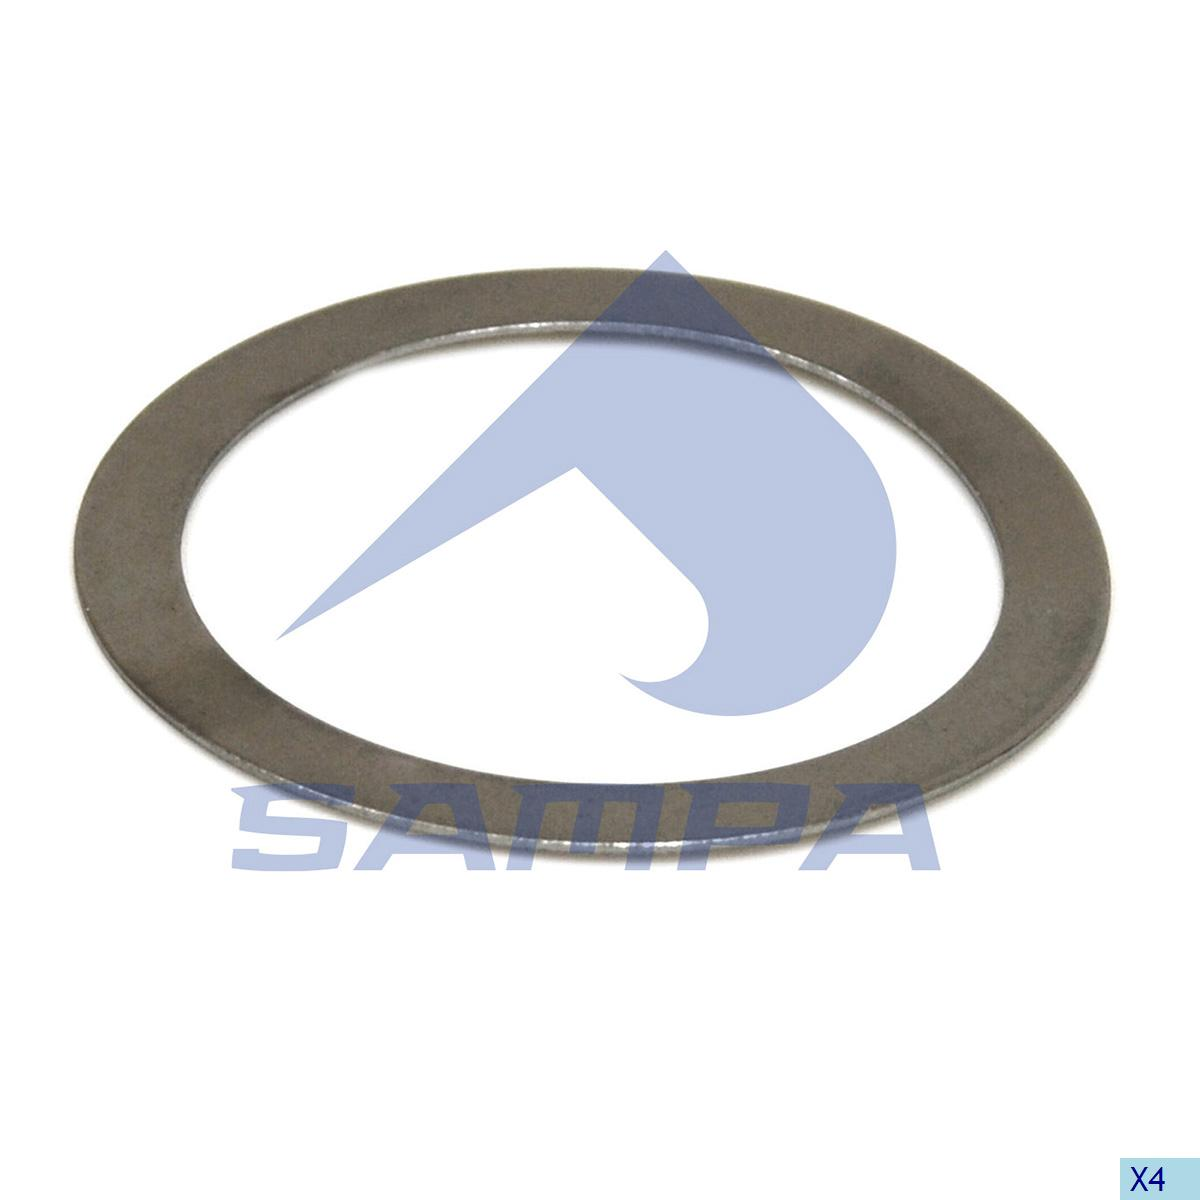 Washer, Propeller Shaft Bearing, Scania, Propeller Shaft